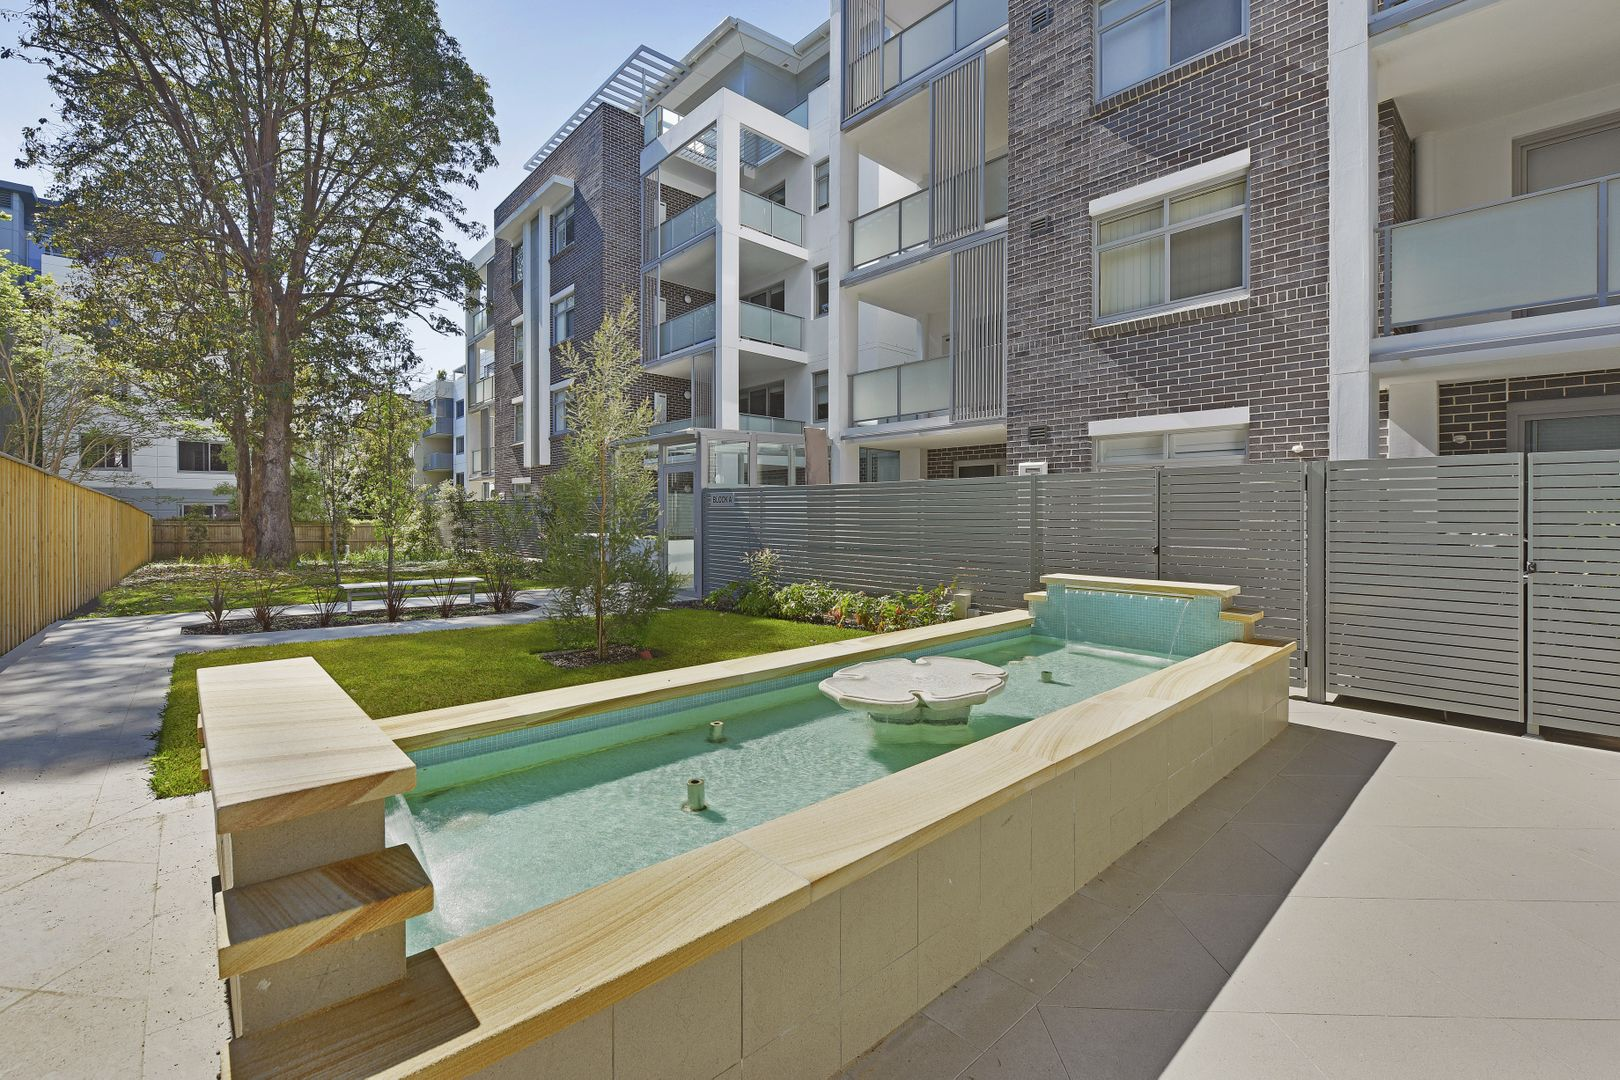 61/212-216 Mona Vale Road, St Ives NSW 2075, Image 0